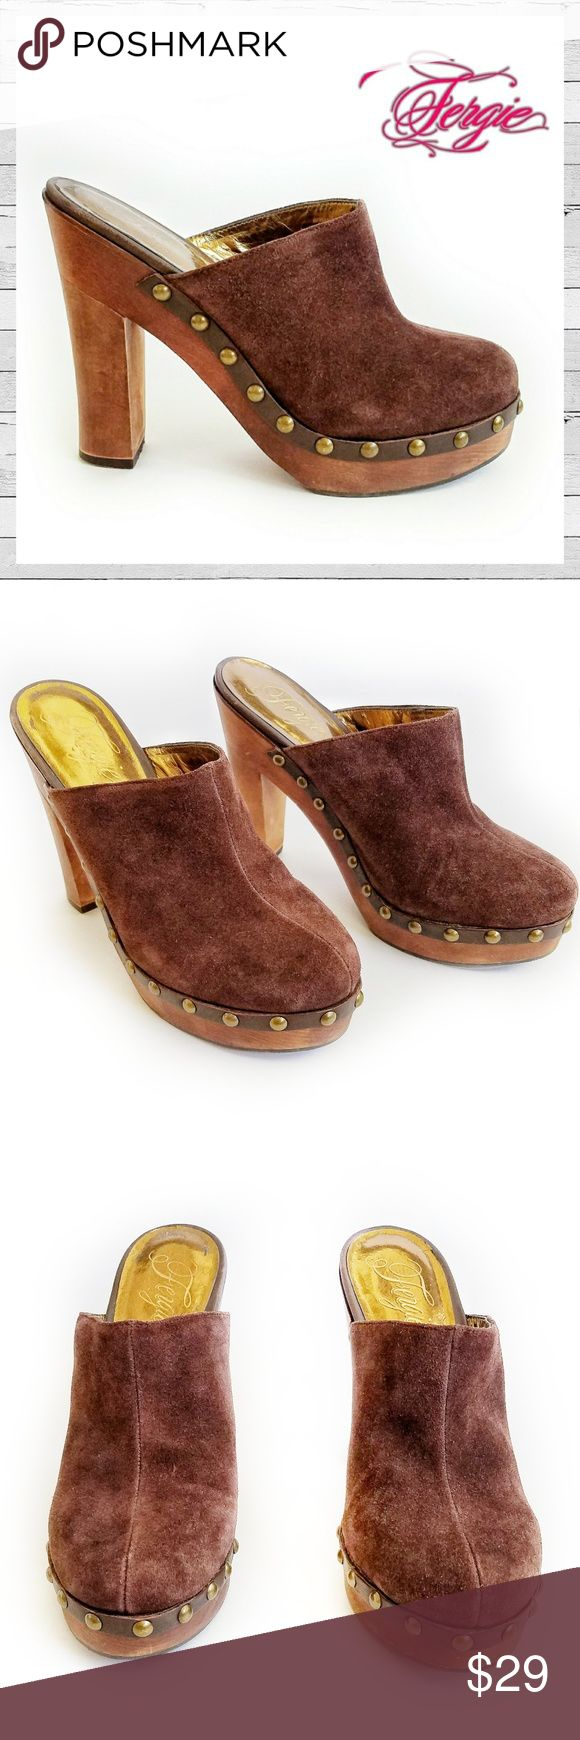 """Fergie Brown Suede 'Krafty"""" Clog Sz 8 1/2 Fergie Brown Suede 'Krafty"""" Clog Sz 8 1/2 in gently loved condition. Show off your chic fashionista style in the Fergie Krafty clogs. Features a leather, suede upper while studded embellishments adorn the base adding interest. Features smooth lining, a cushioning insole, a platform midsole and a traction outsole.  Heel Height: 4 3/4"""" Fit: True to Size Upper: Velour Suede Leather Fergie Shoes Mules & Clogs"""